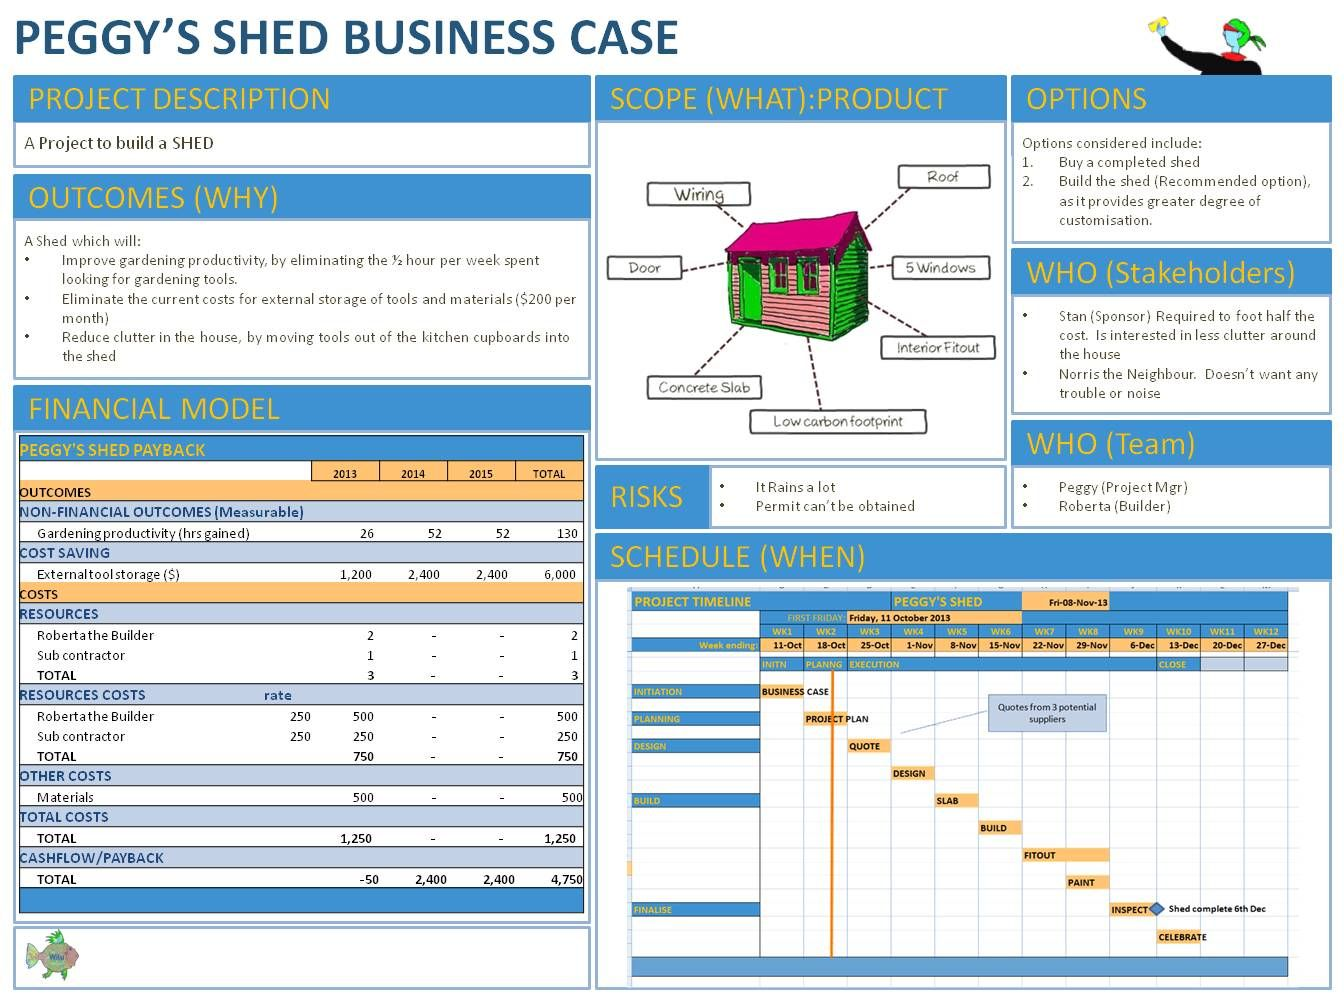 page business case wiluprojectscom gqabd2db